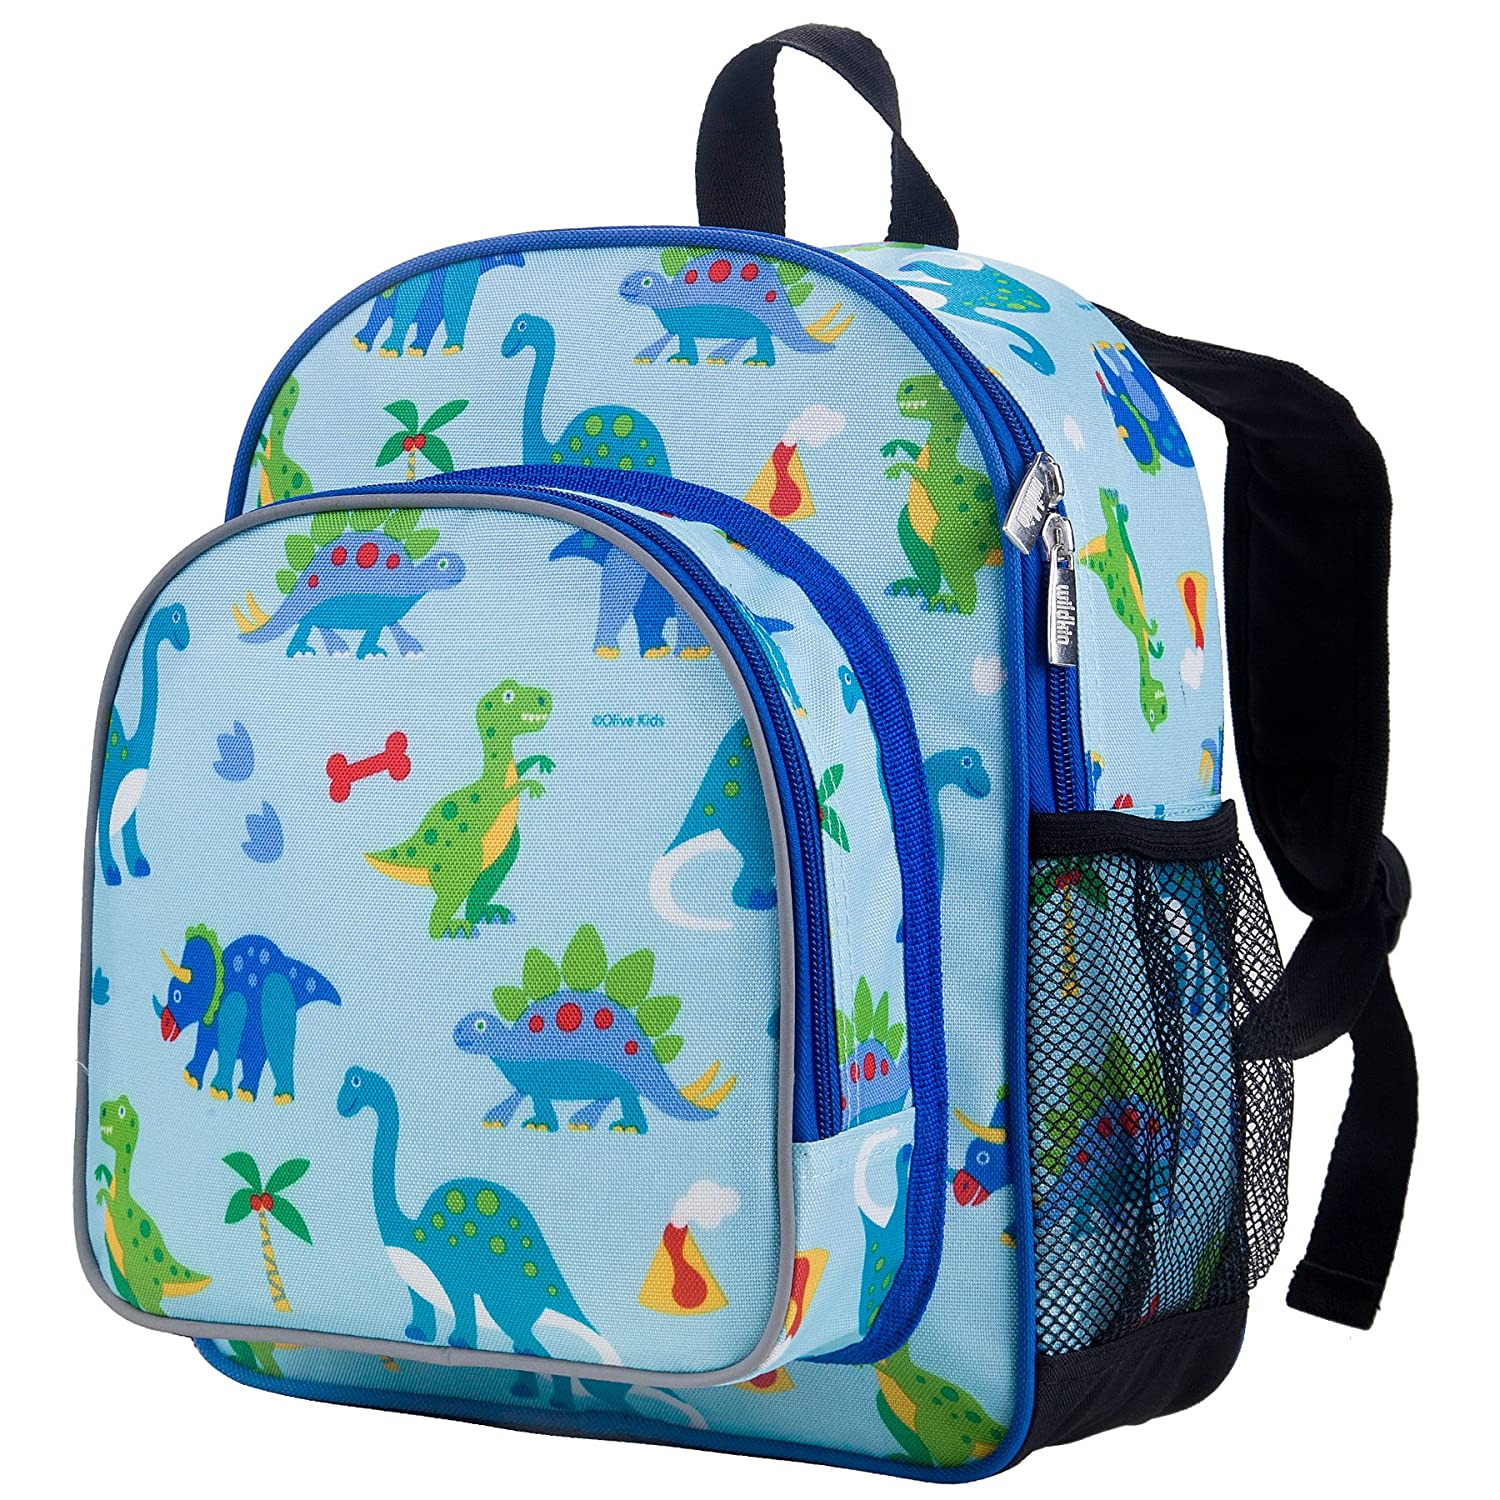 ee4a5b8797aa dinosaur backpack cheap   OFF46% The Largest Catalog Discounts